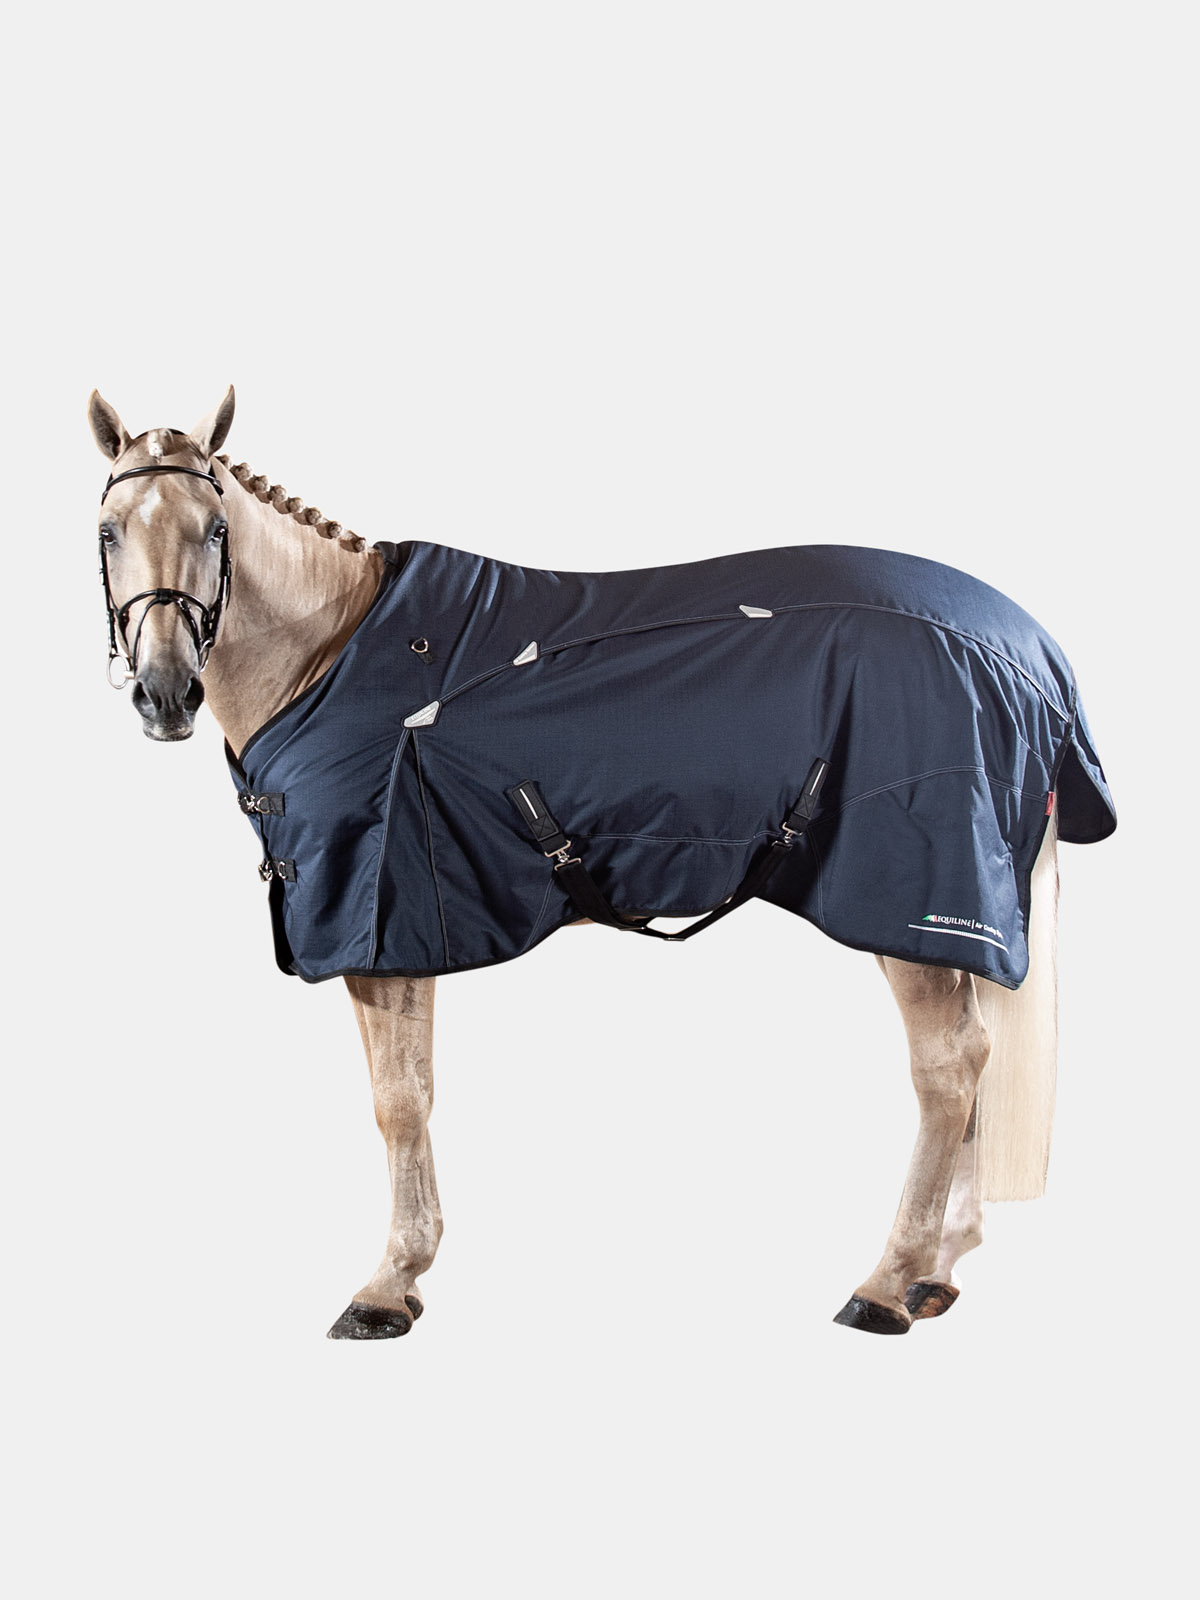 Equiline NED medium weight turnout blanket